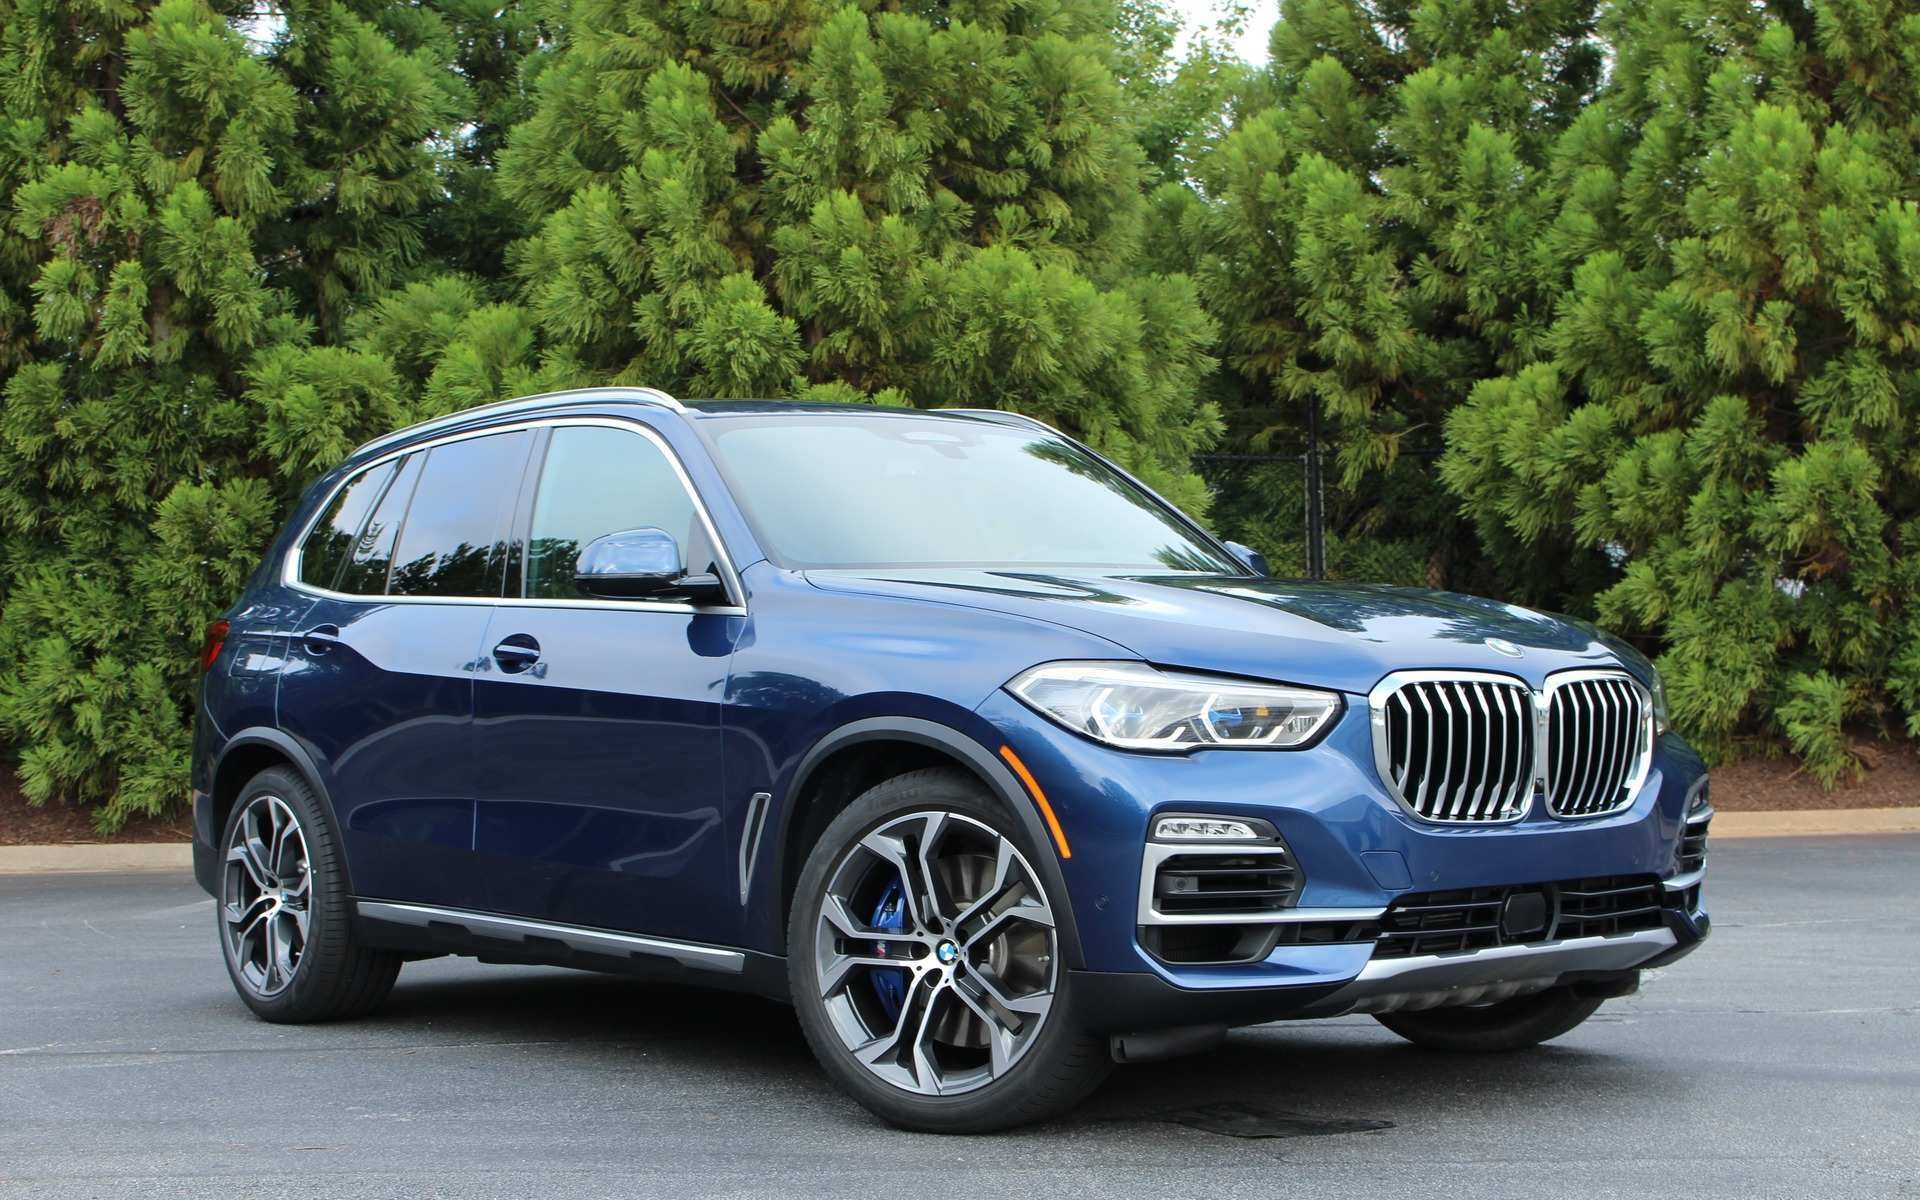 55 Best 2019 BMW X5 Price Design And Review